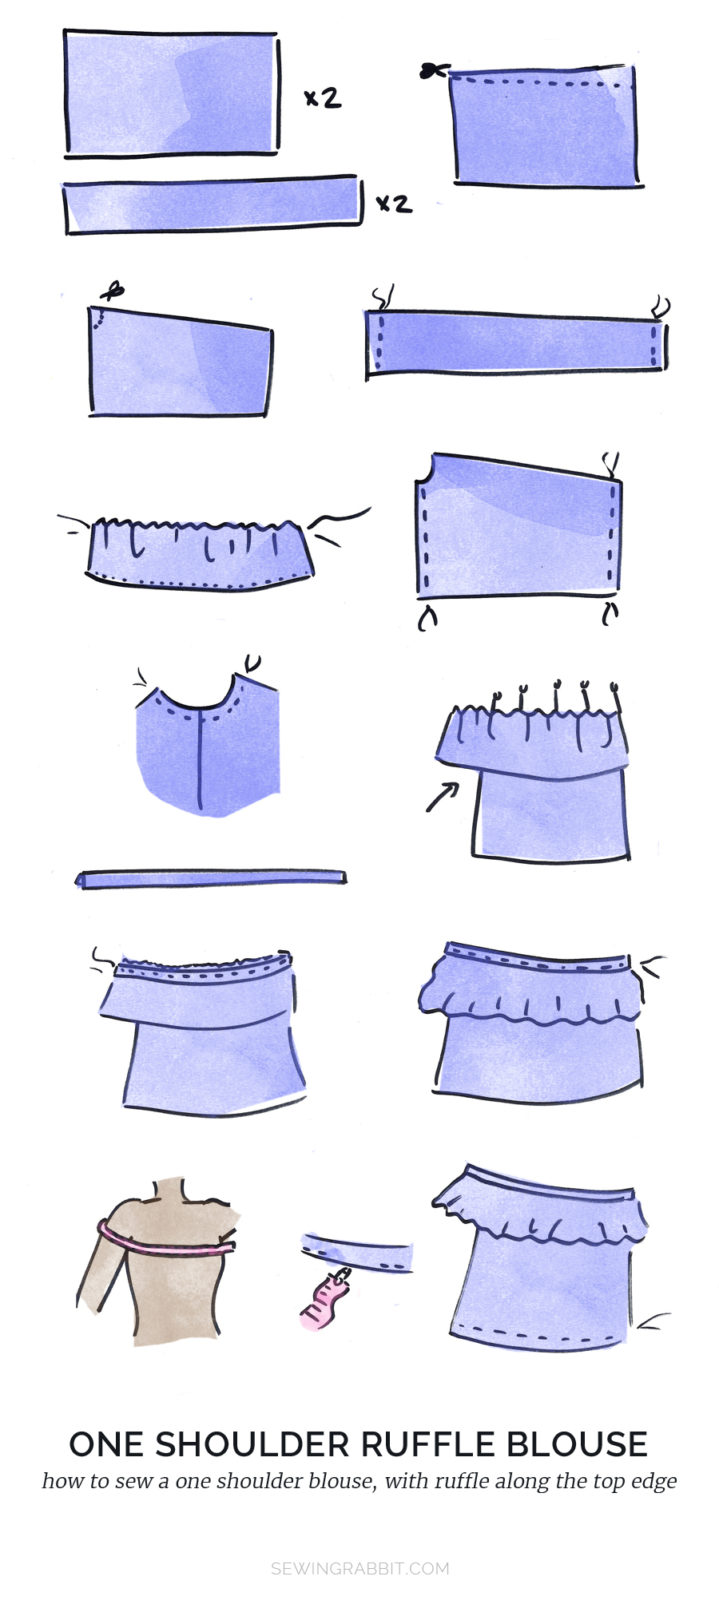 how to sew one shoulder ruffle blouse